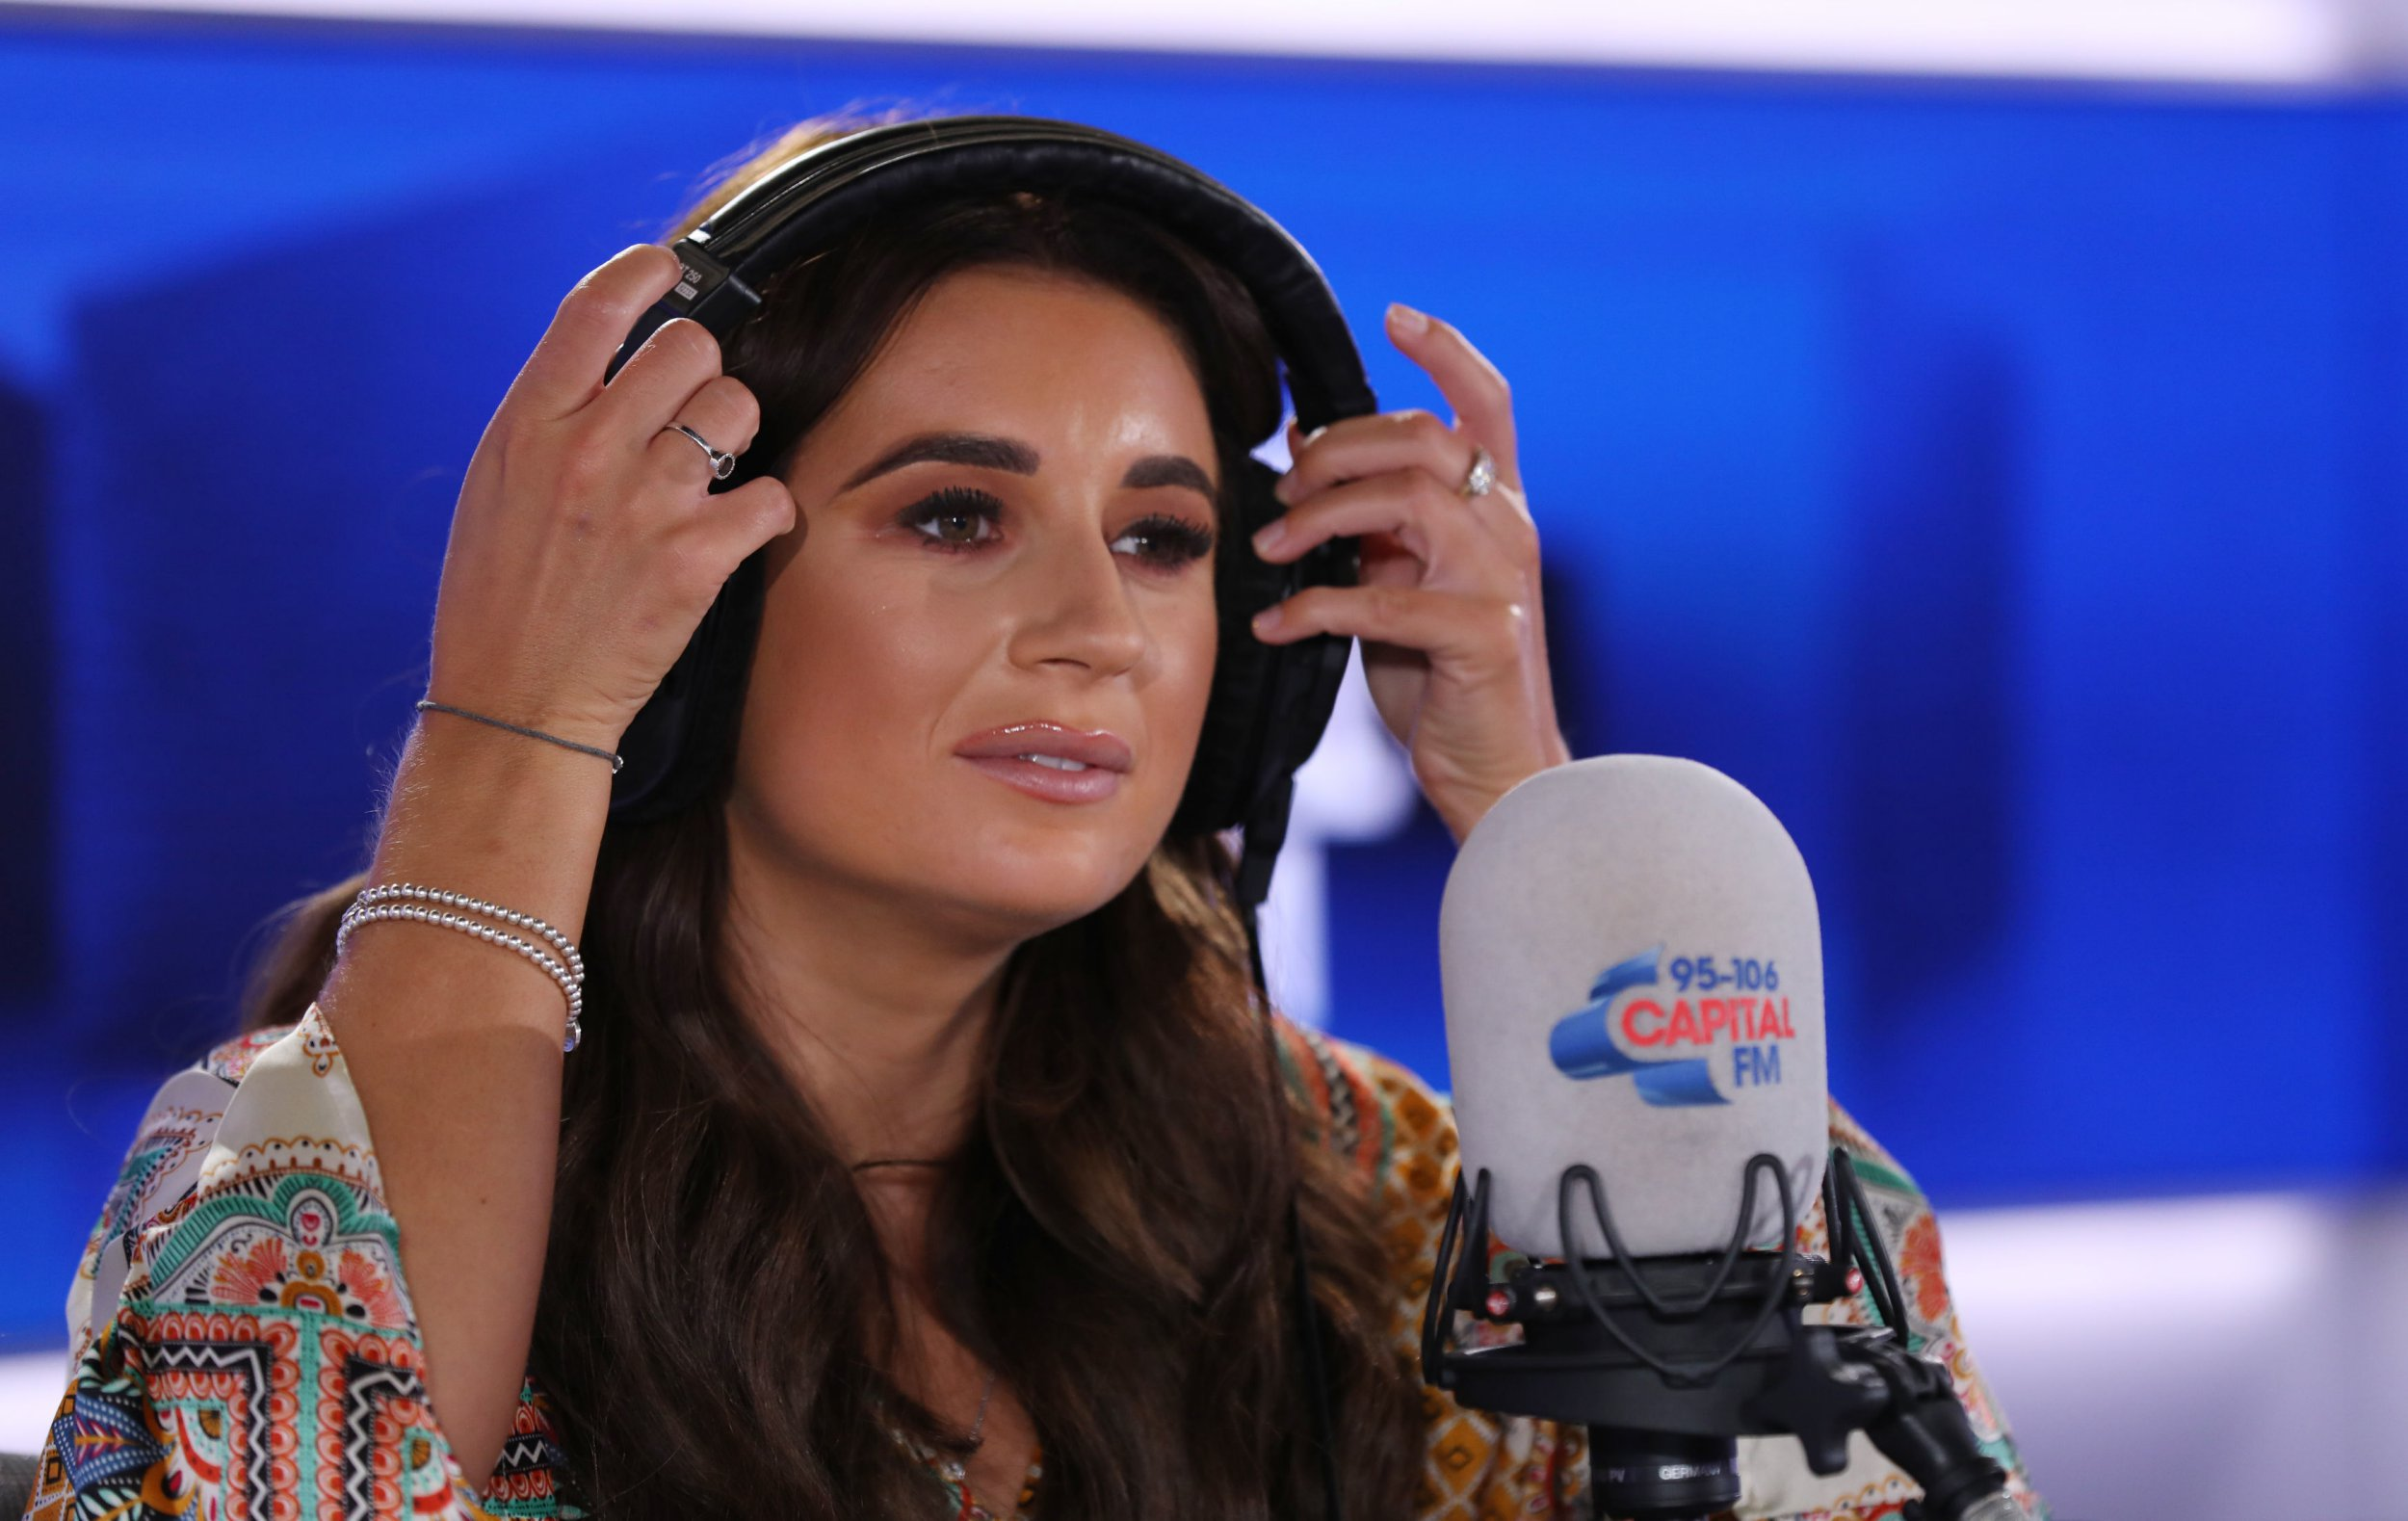 Love Island 2018 winner Dani Dyer co-hosting Capital Breakfast with Roman Kemp at Capital Radio in London. After proving a huge hit with Capital listeners when she joined Roman in the Capital studio as a guest on Tuesday, Dani returned this morning to co-host London?s no.1 commercial breakfast show. PRESS ASSOCIATION Photo. Picture date: Friday August 10, 2018. Photo credit should read: Isabel Infantes/PA Wire